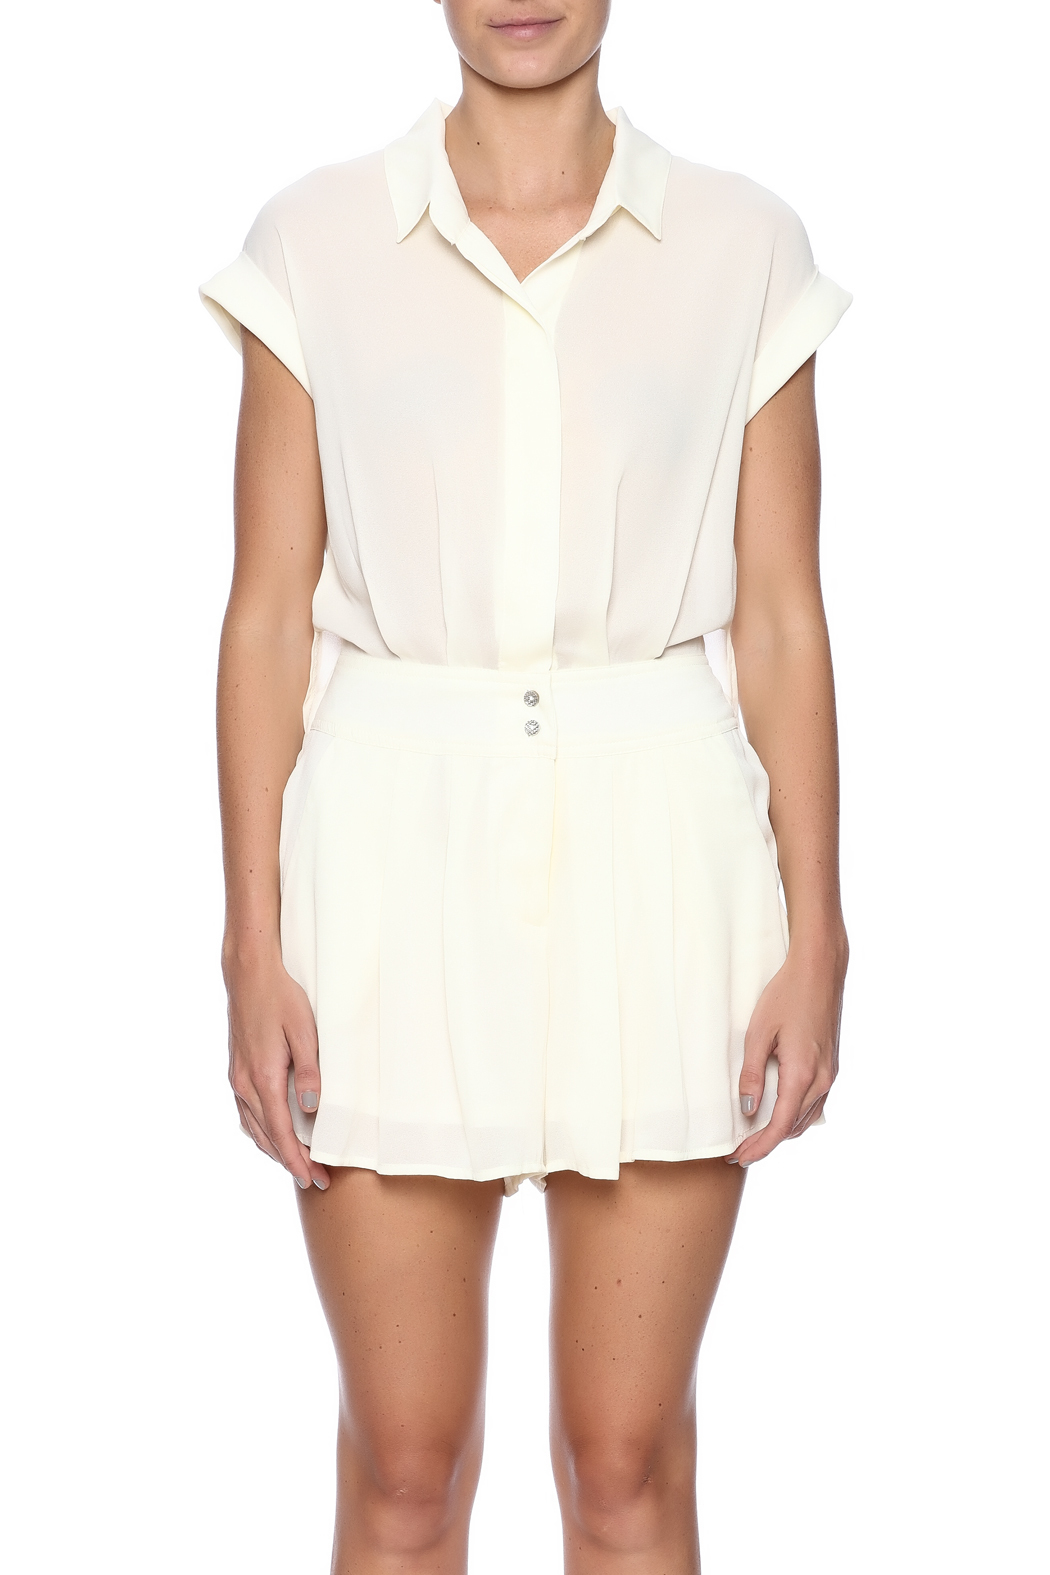 Double Zero Ivory Romper - Side Cropped Image